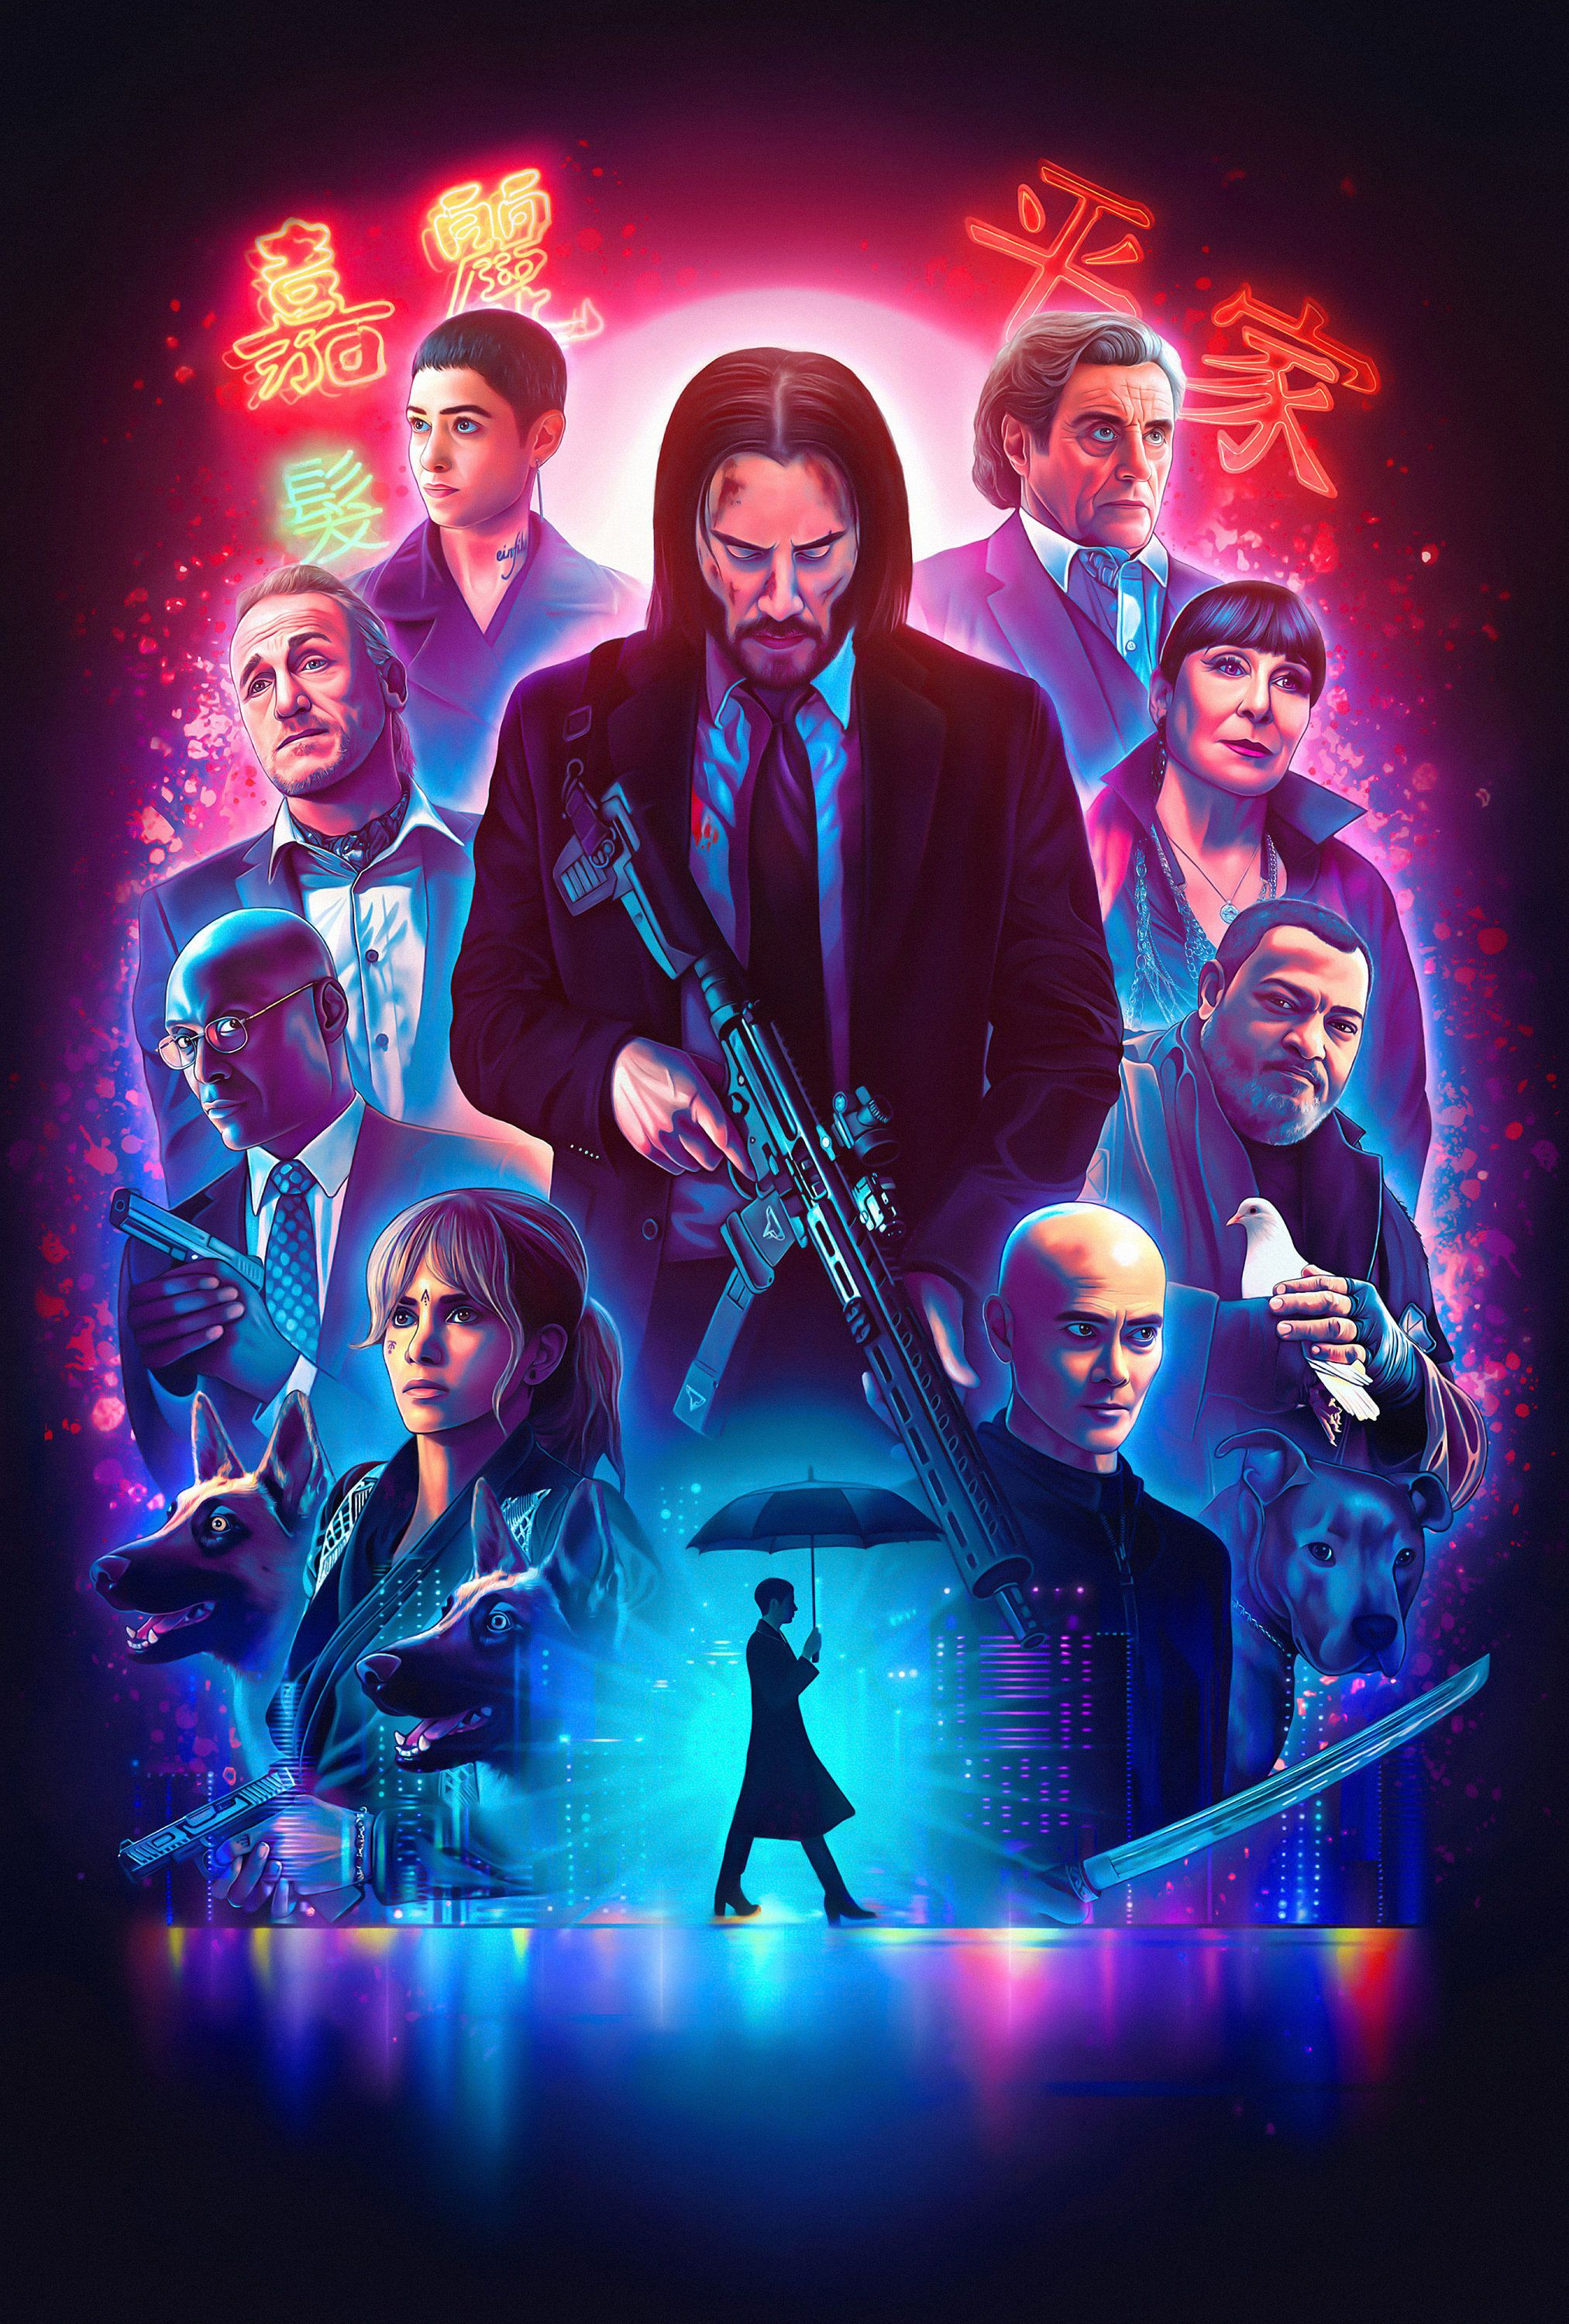 John Wick Chapter 3 Parabellum 2019 Keanu Reeves Movie Poster Wall Art Home Decor Print In 2021 Keanu Reeves John Wick Movie Movie Art